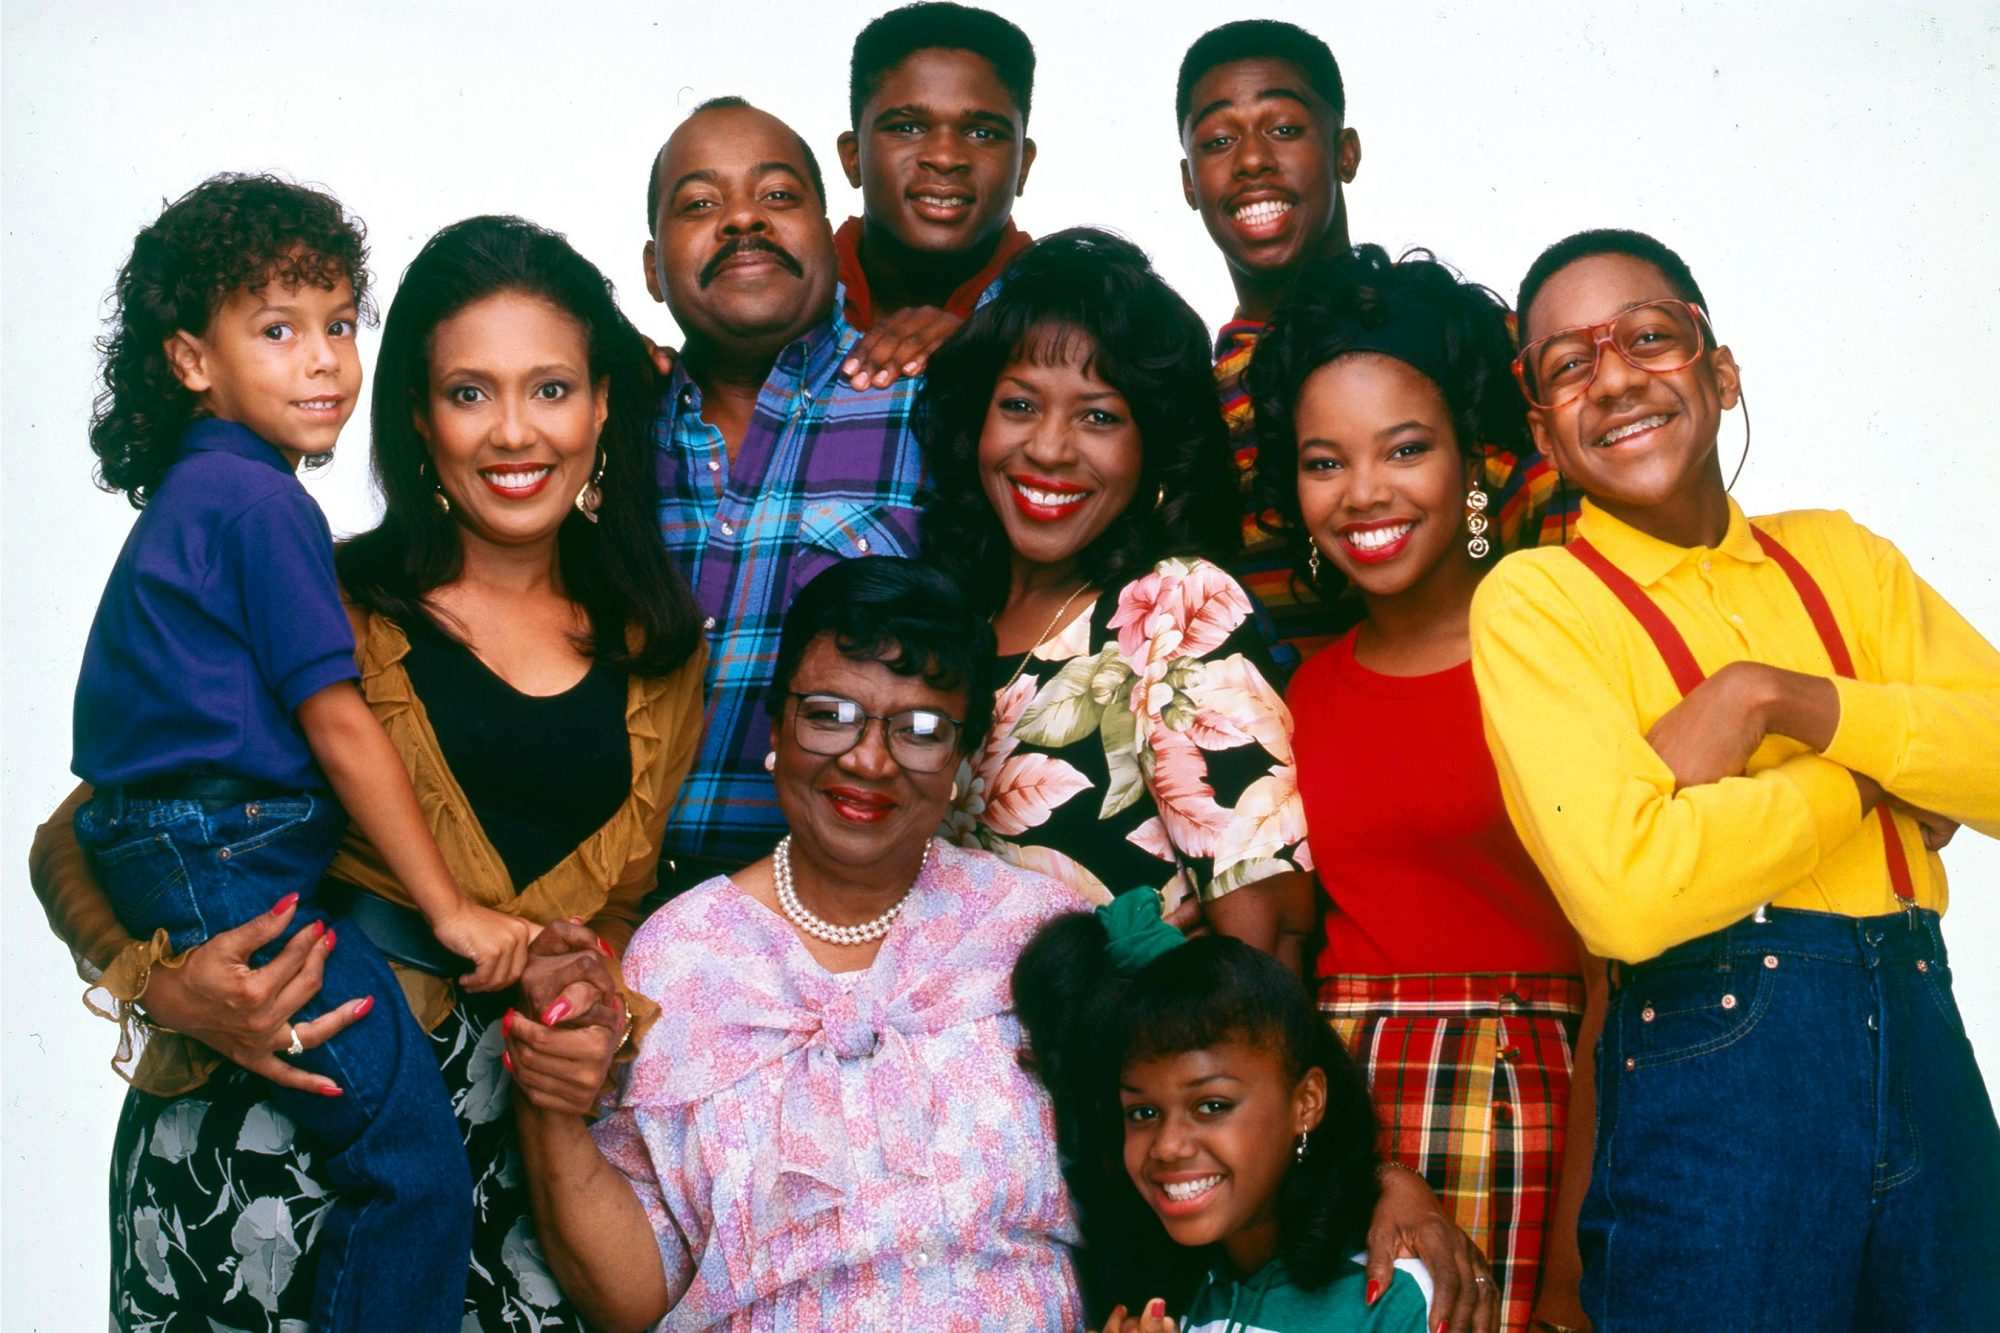 BRYTON JAMES;TELMA HOPKINS;REGINALD VELJOHNSON;ROSETTA LENOIRE;DARIUS MCCRARY;JOMARIE PAYTON;JAIMEE FOXWORTH;SHAWN HARRISON;KELLIE SHANYGNE WILLIAMS;JALEEL WHITE